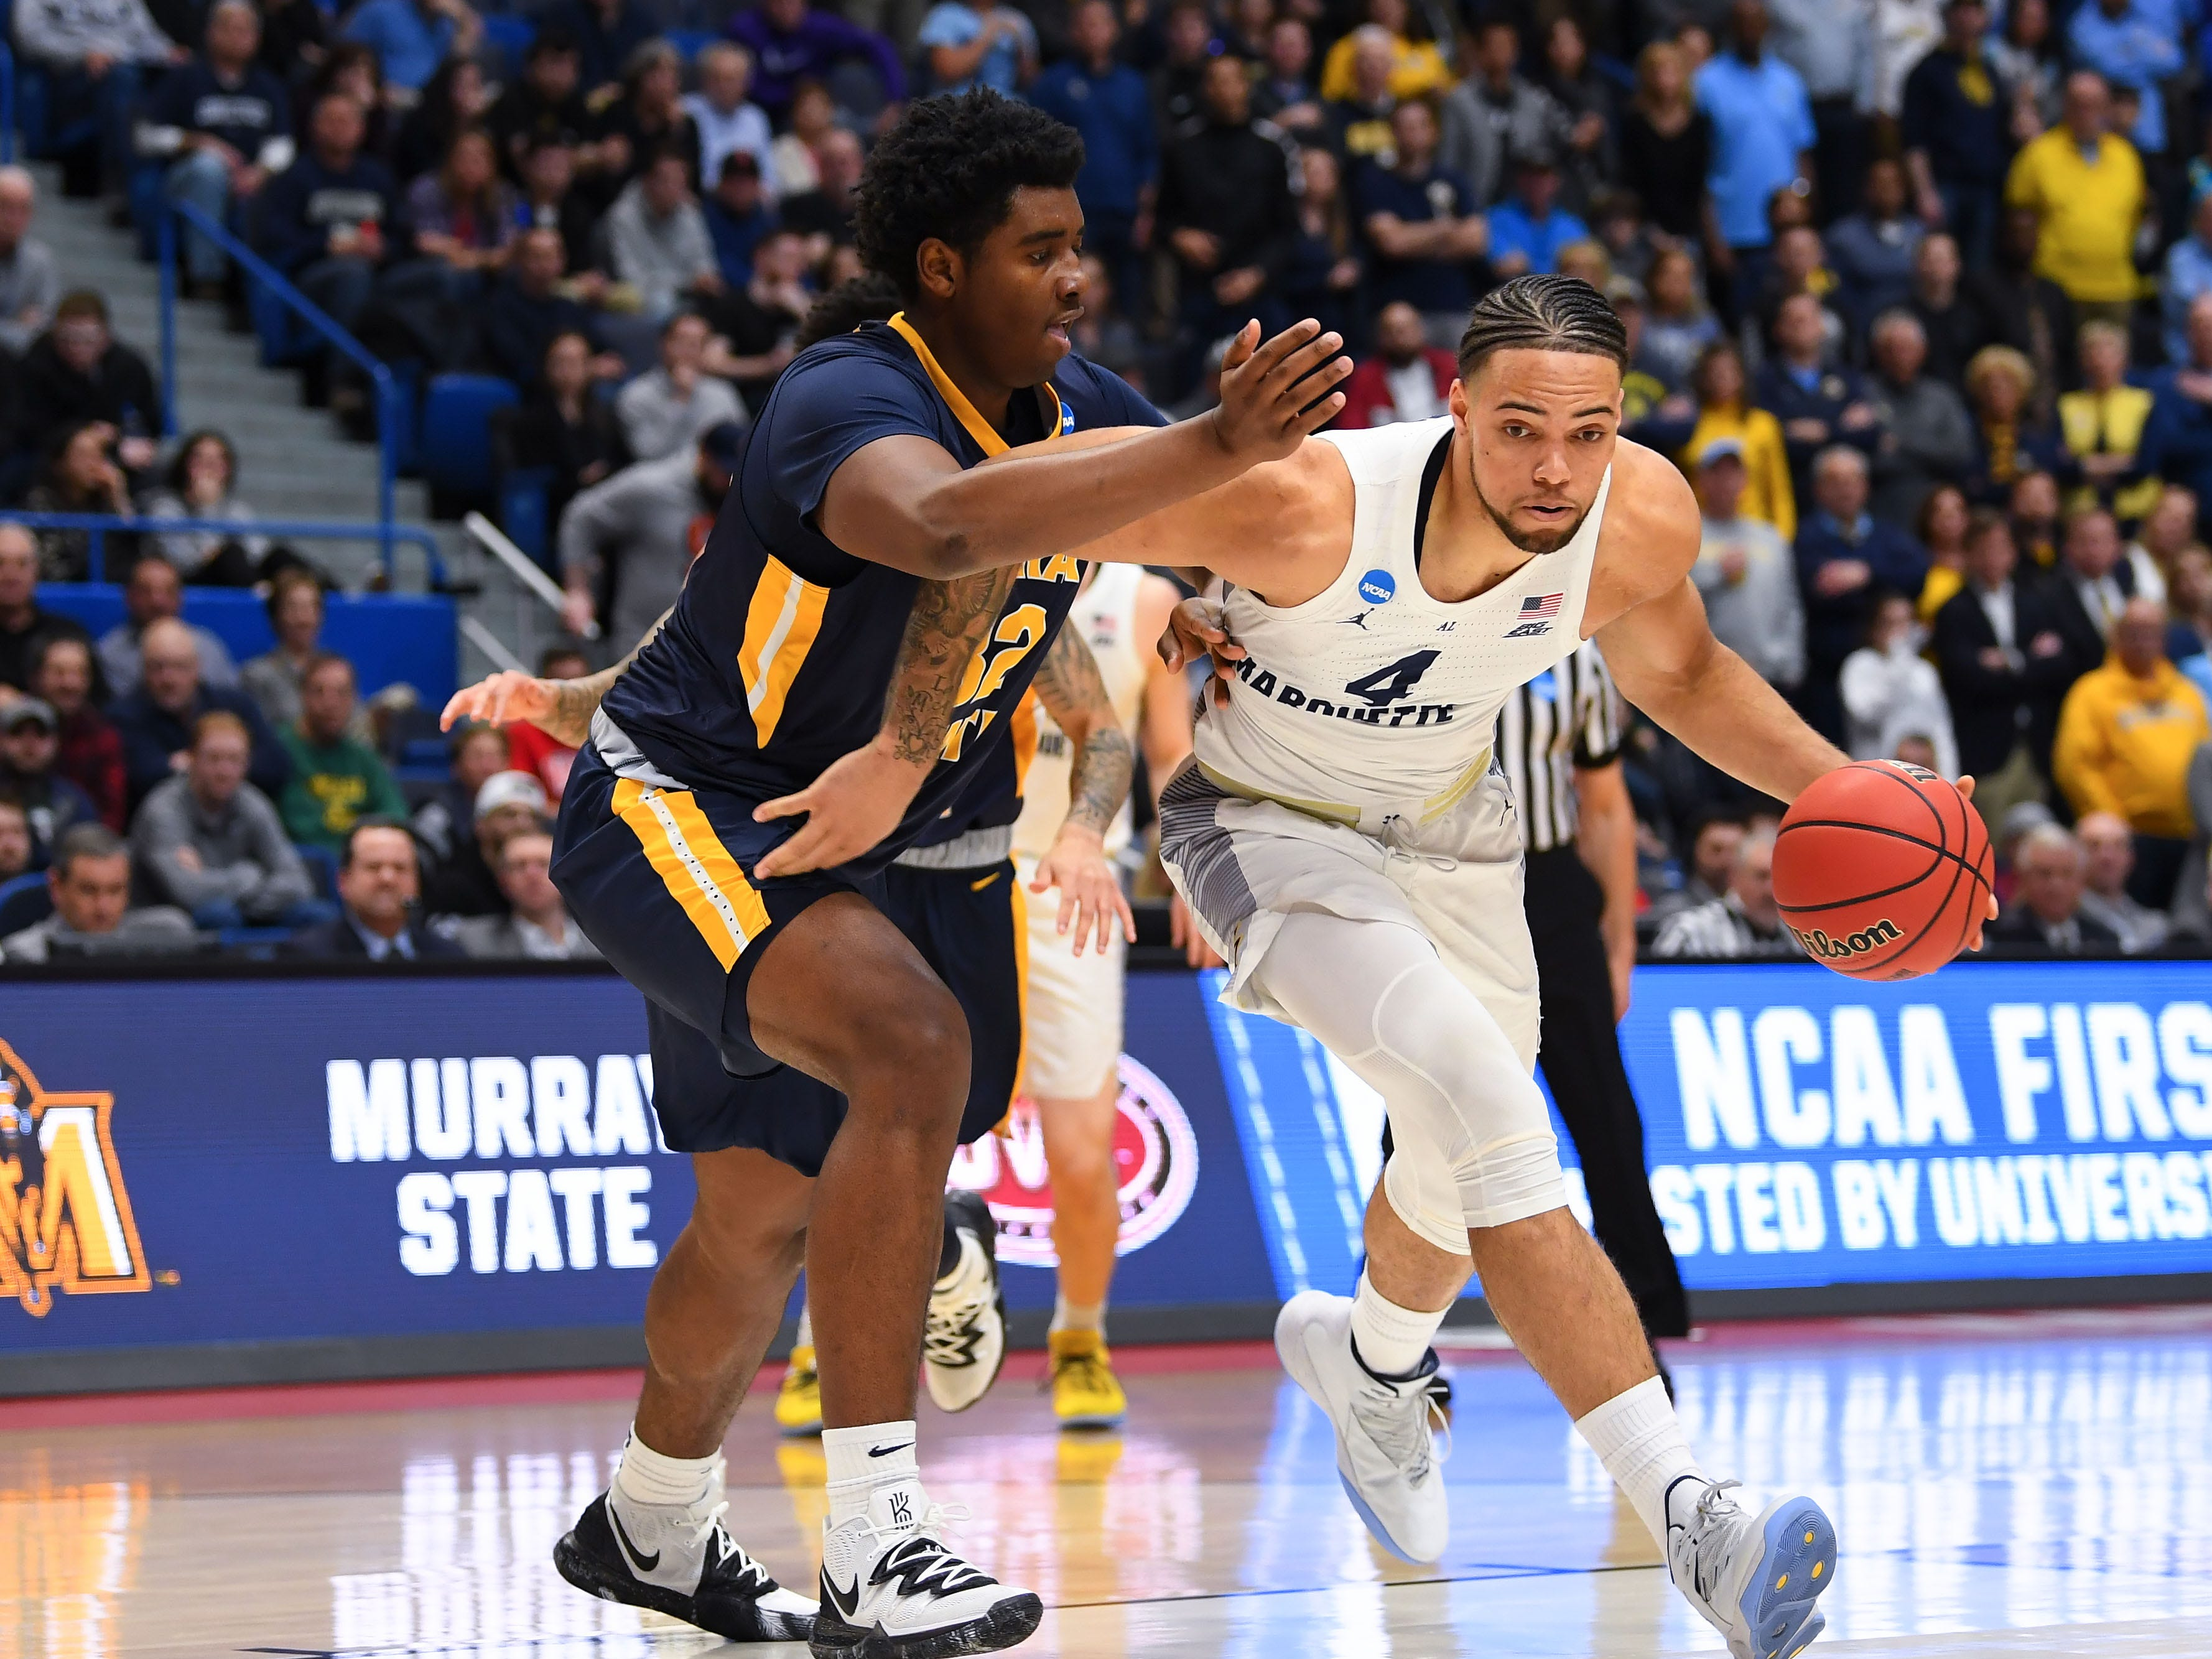 Golden Eagles forward Theo John  drives against Murray State forward Darnell Cowart during the first half.